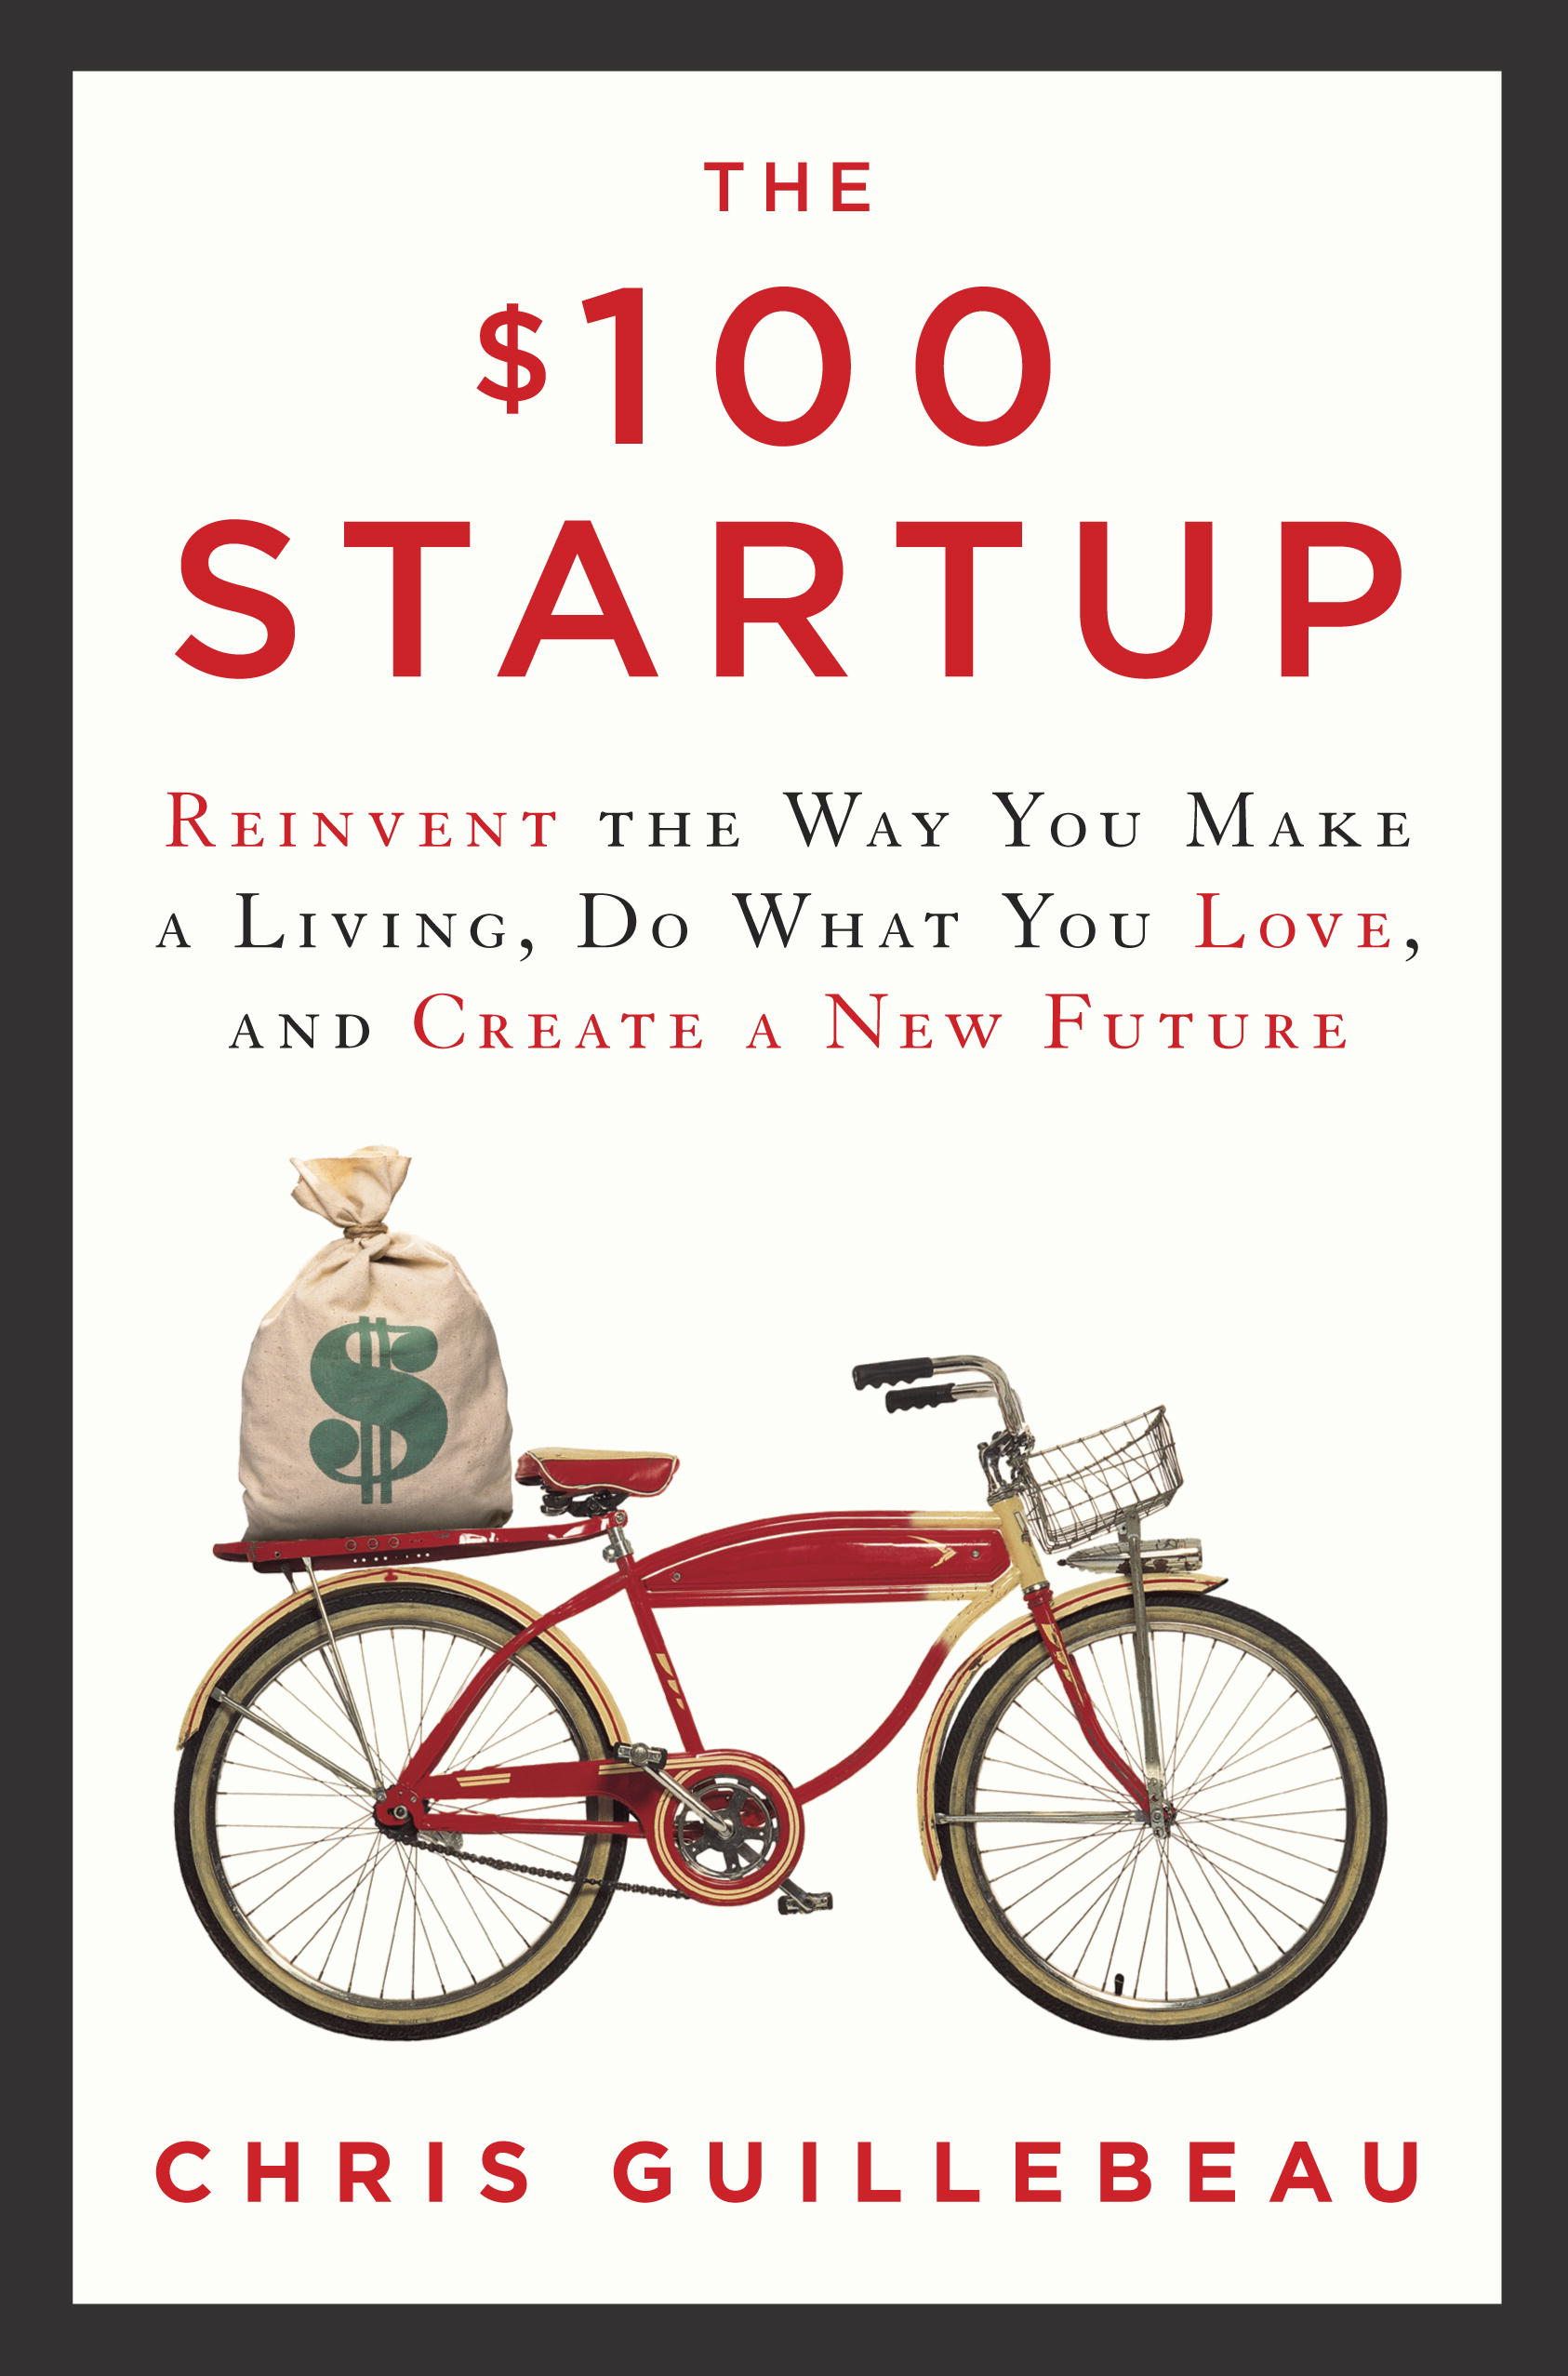 $100 Startup - Chris Guillebeau (Becoming Who You Are)